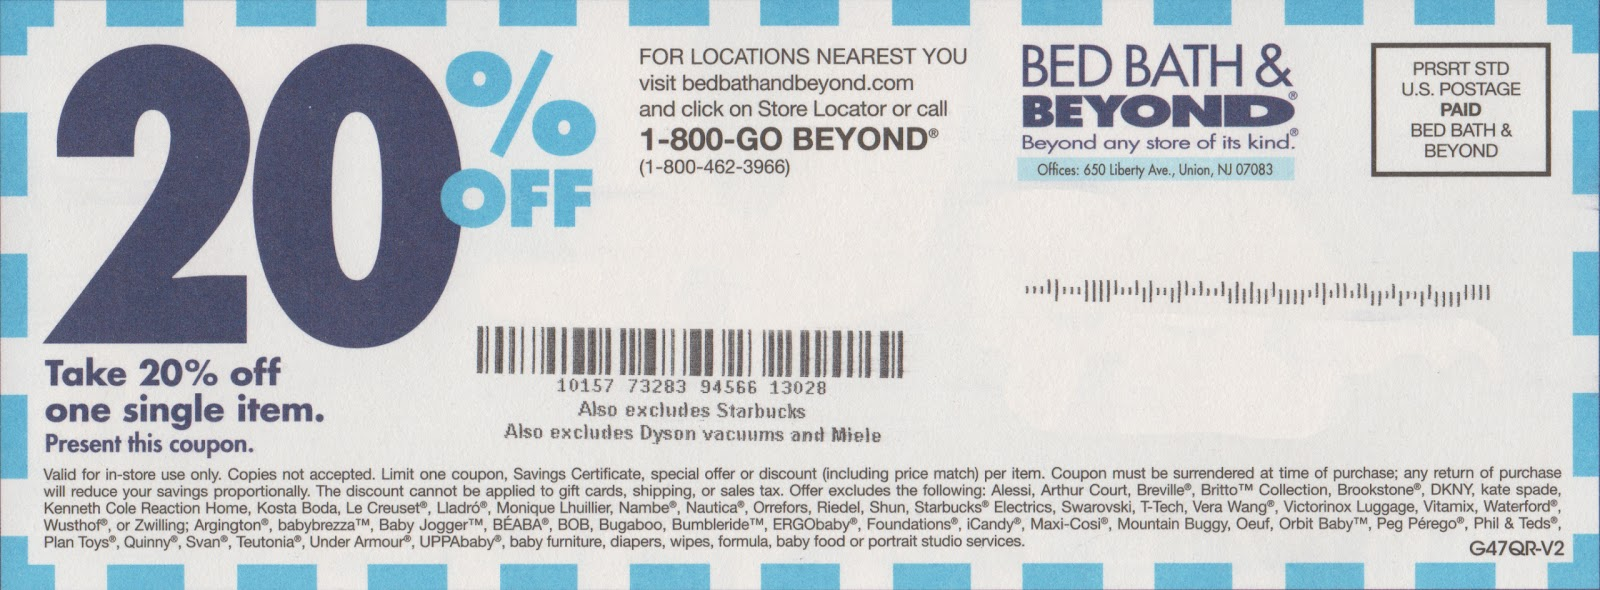 Bed bath beyond french press - Saving More With Bed Bath And Beyond Coupon